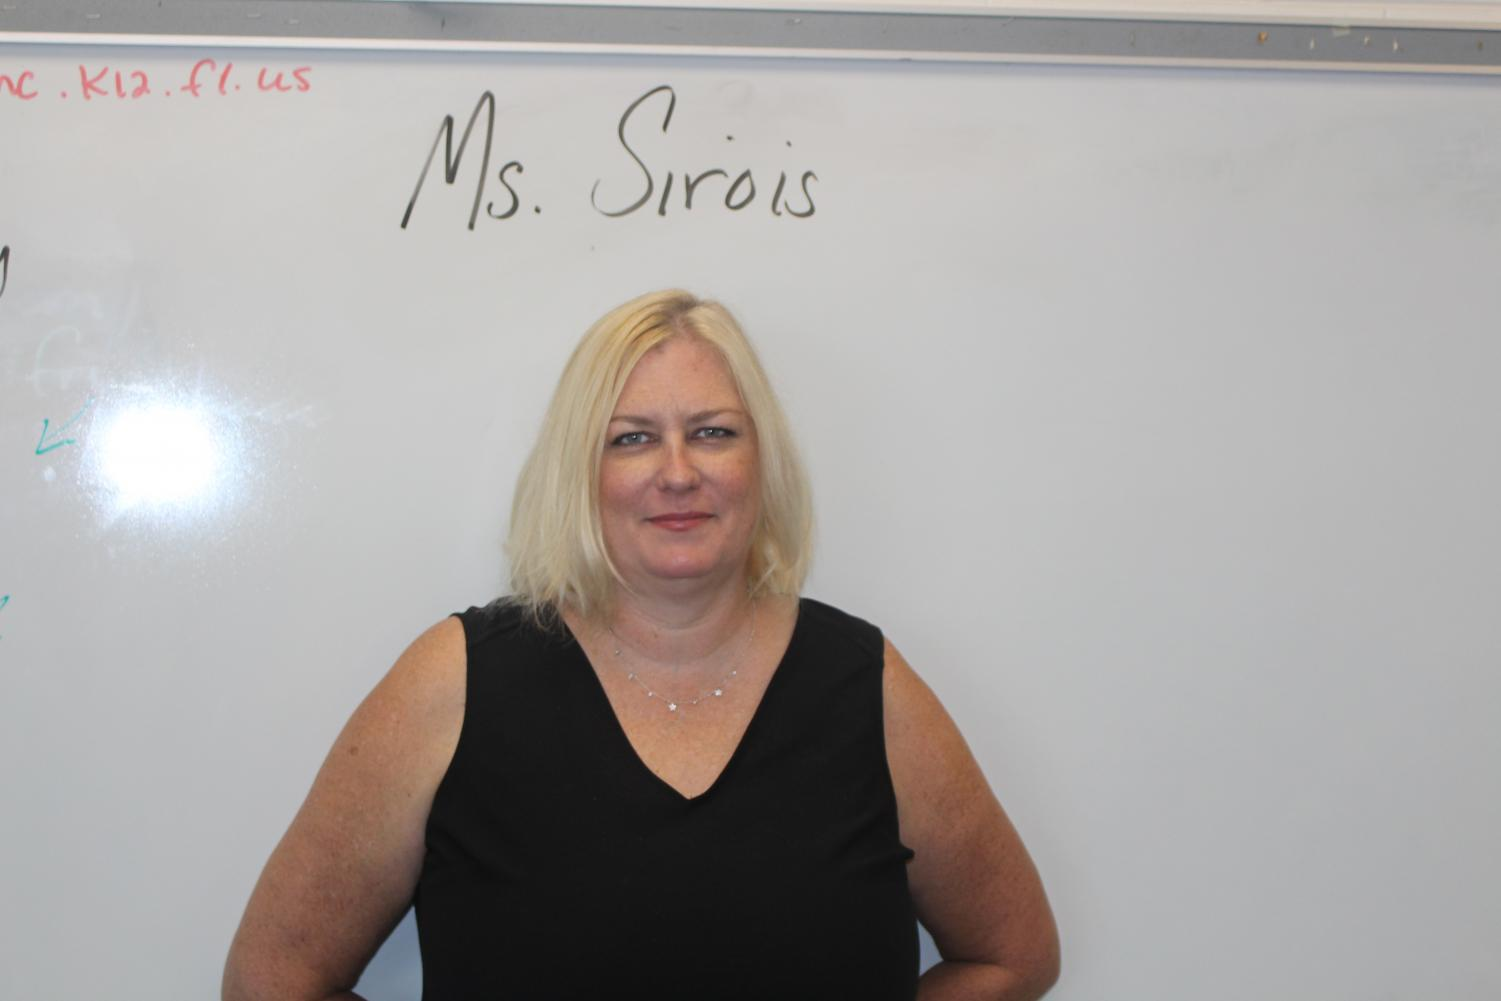 Ms. Sirois, the new FSA Prep teacher, has taught for 12 years.